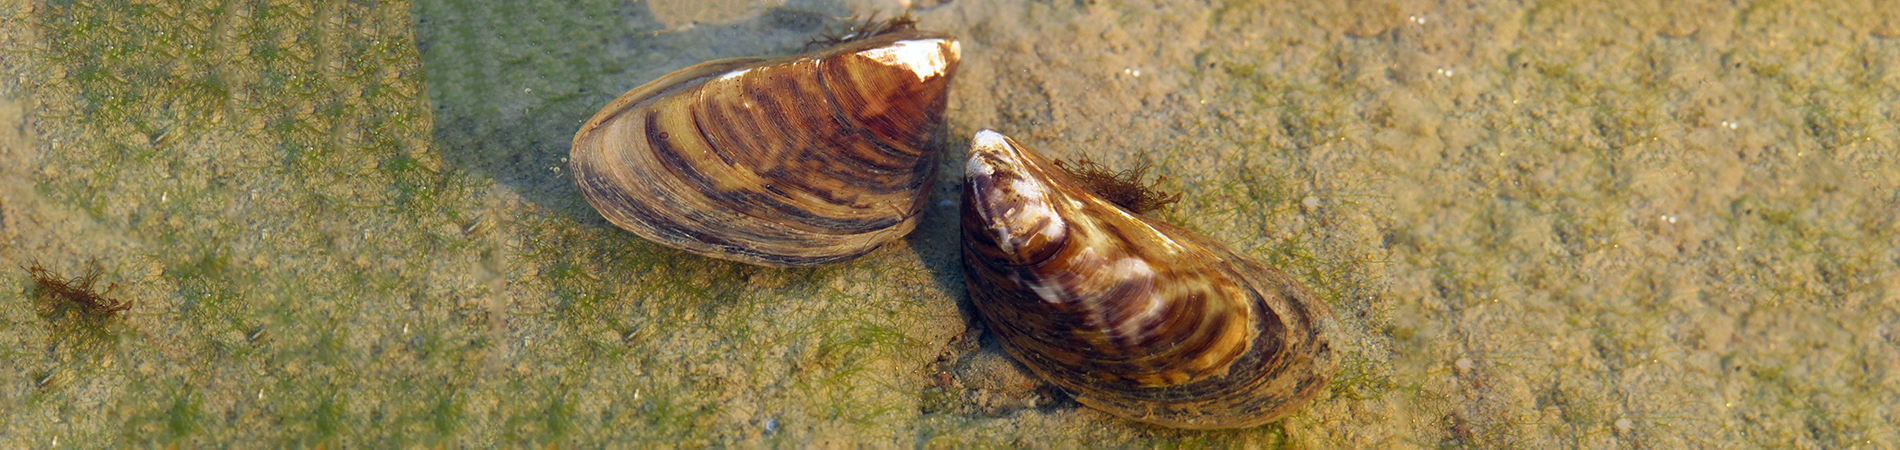 Zebra mussels in water